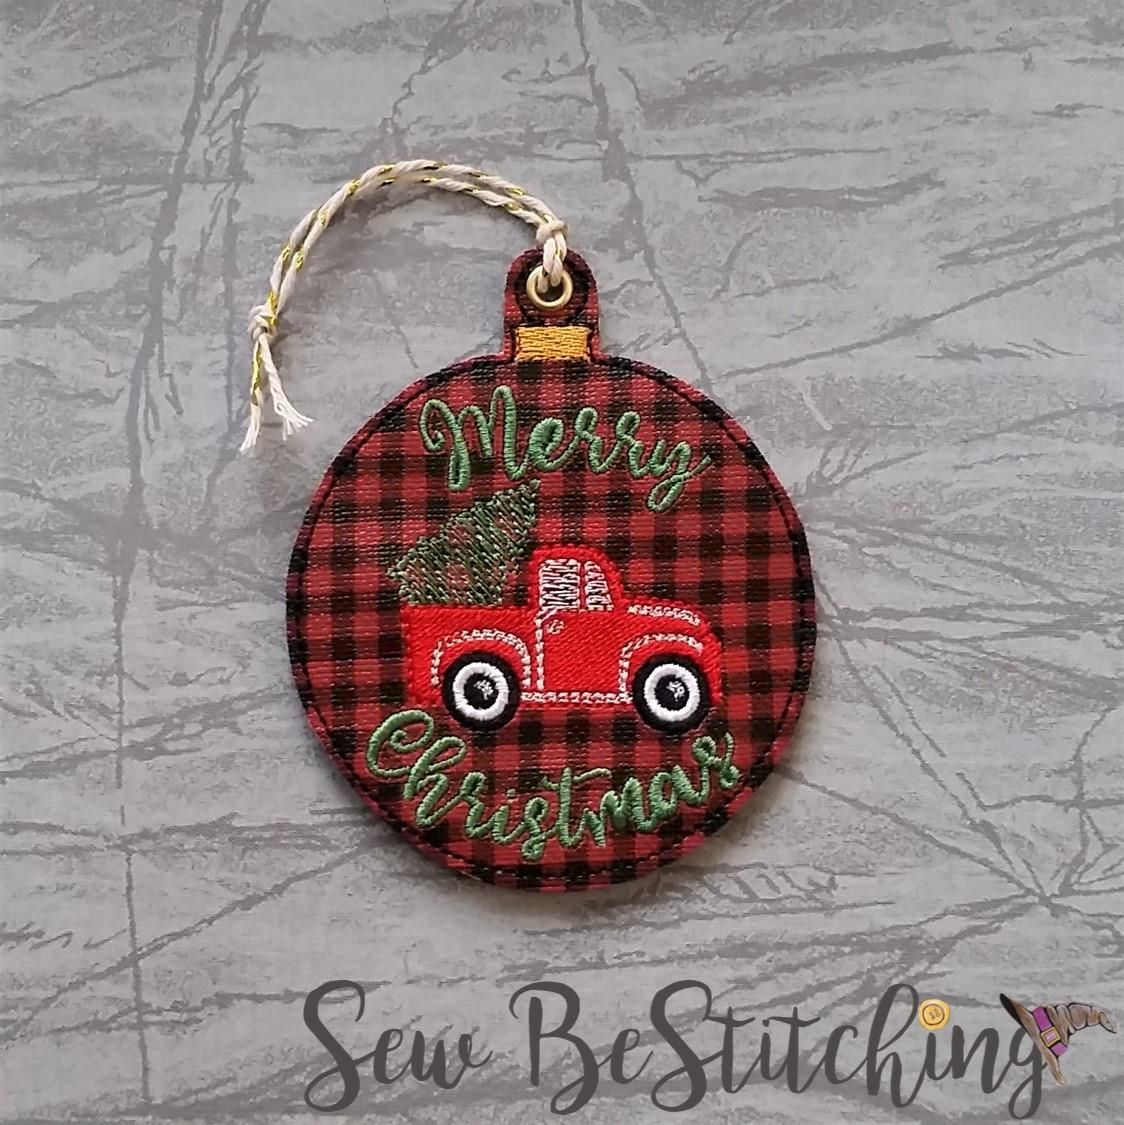 Merry Christmas Truck Ornament Embroidery Design Digital File Machine Embroidery Christmas Embroidery Designs Machine Embroidery Christmas Ornaments